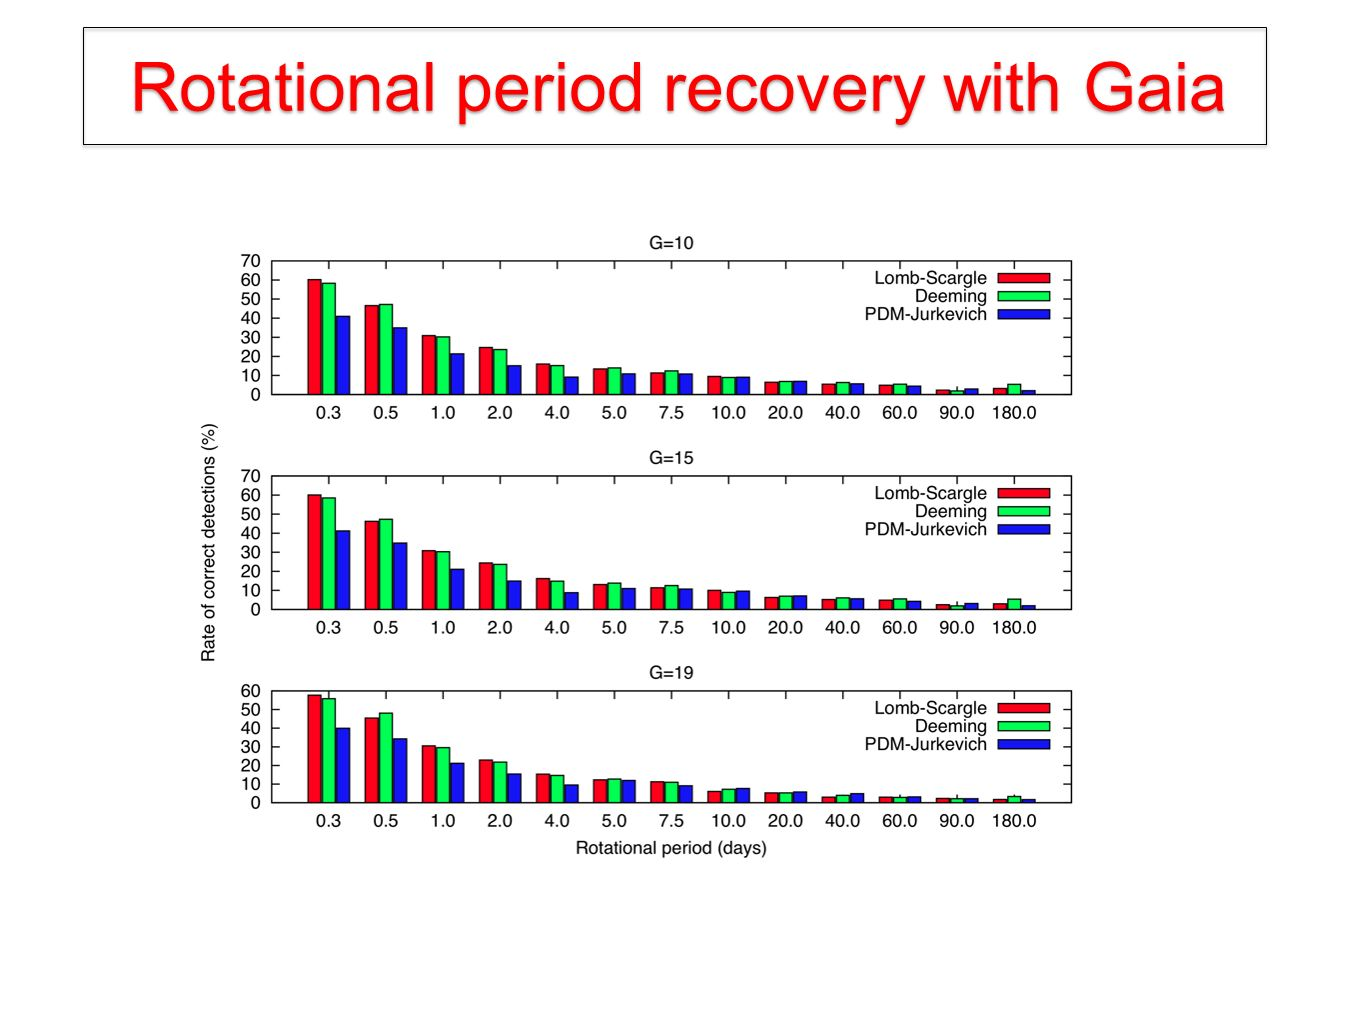 Rotational period recovery with Gaia